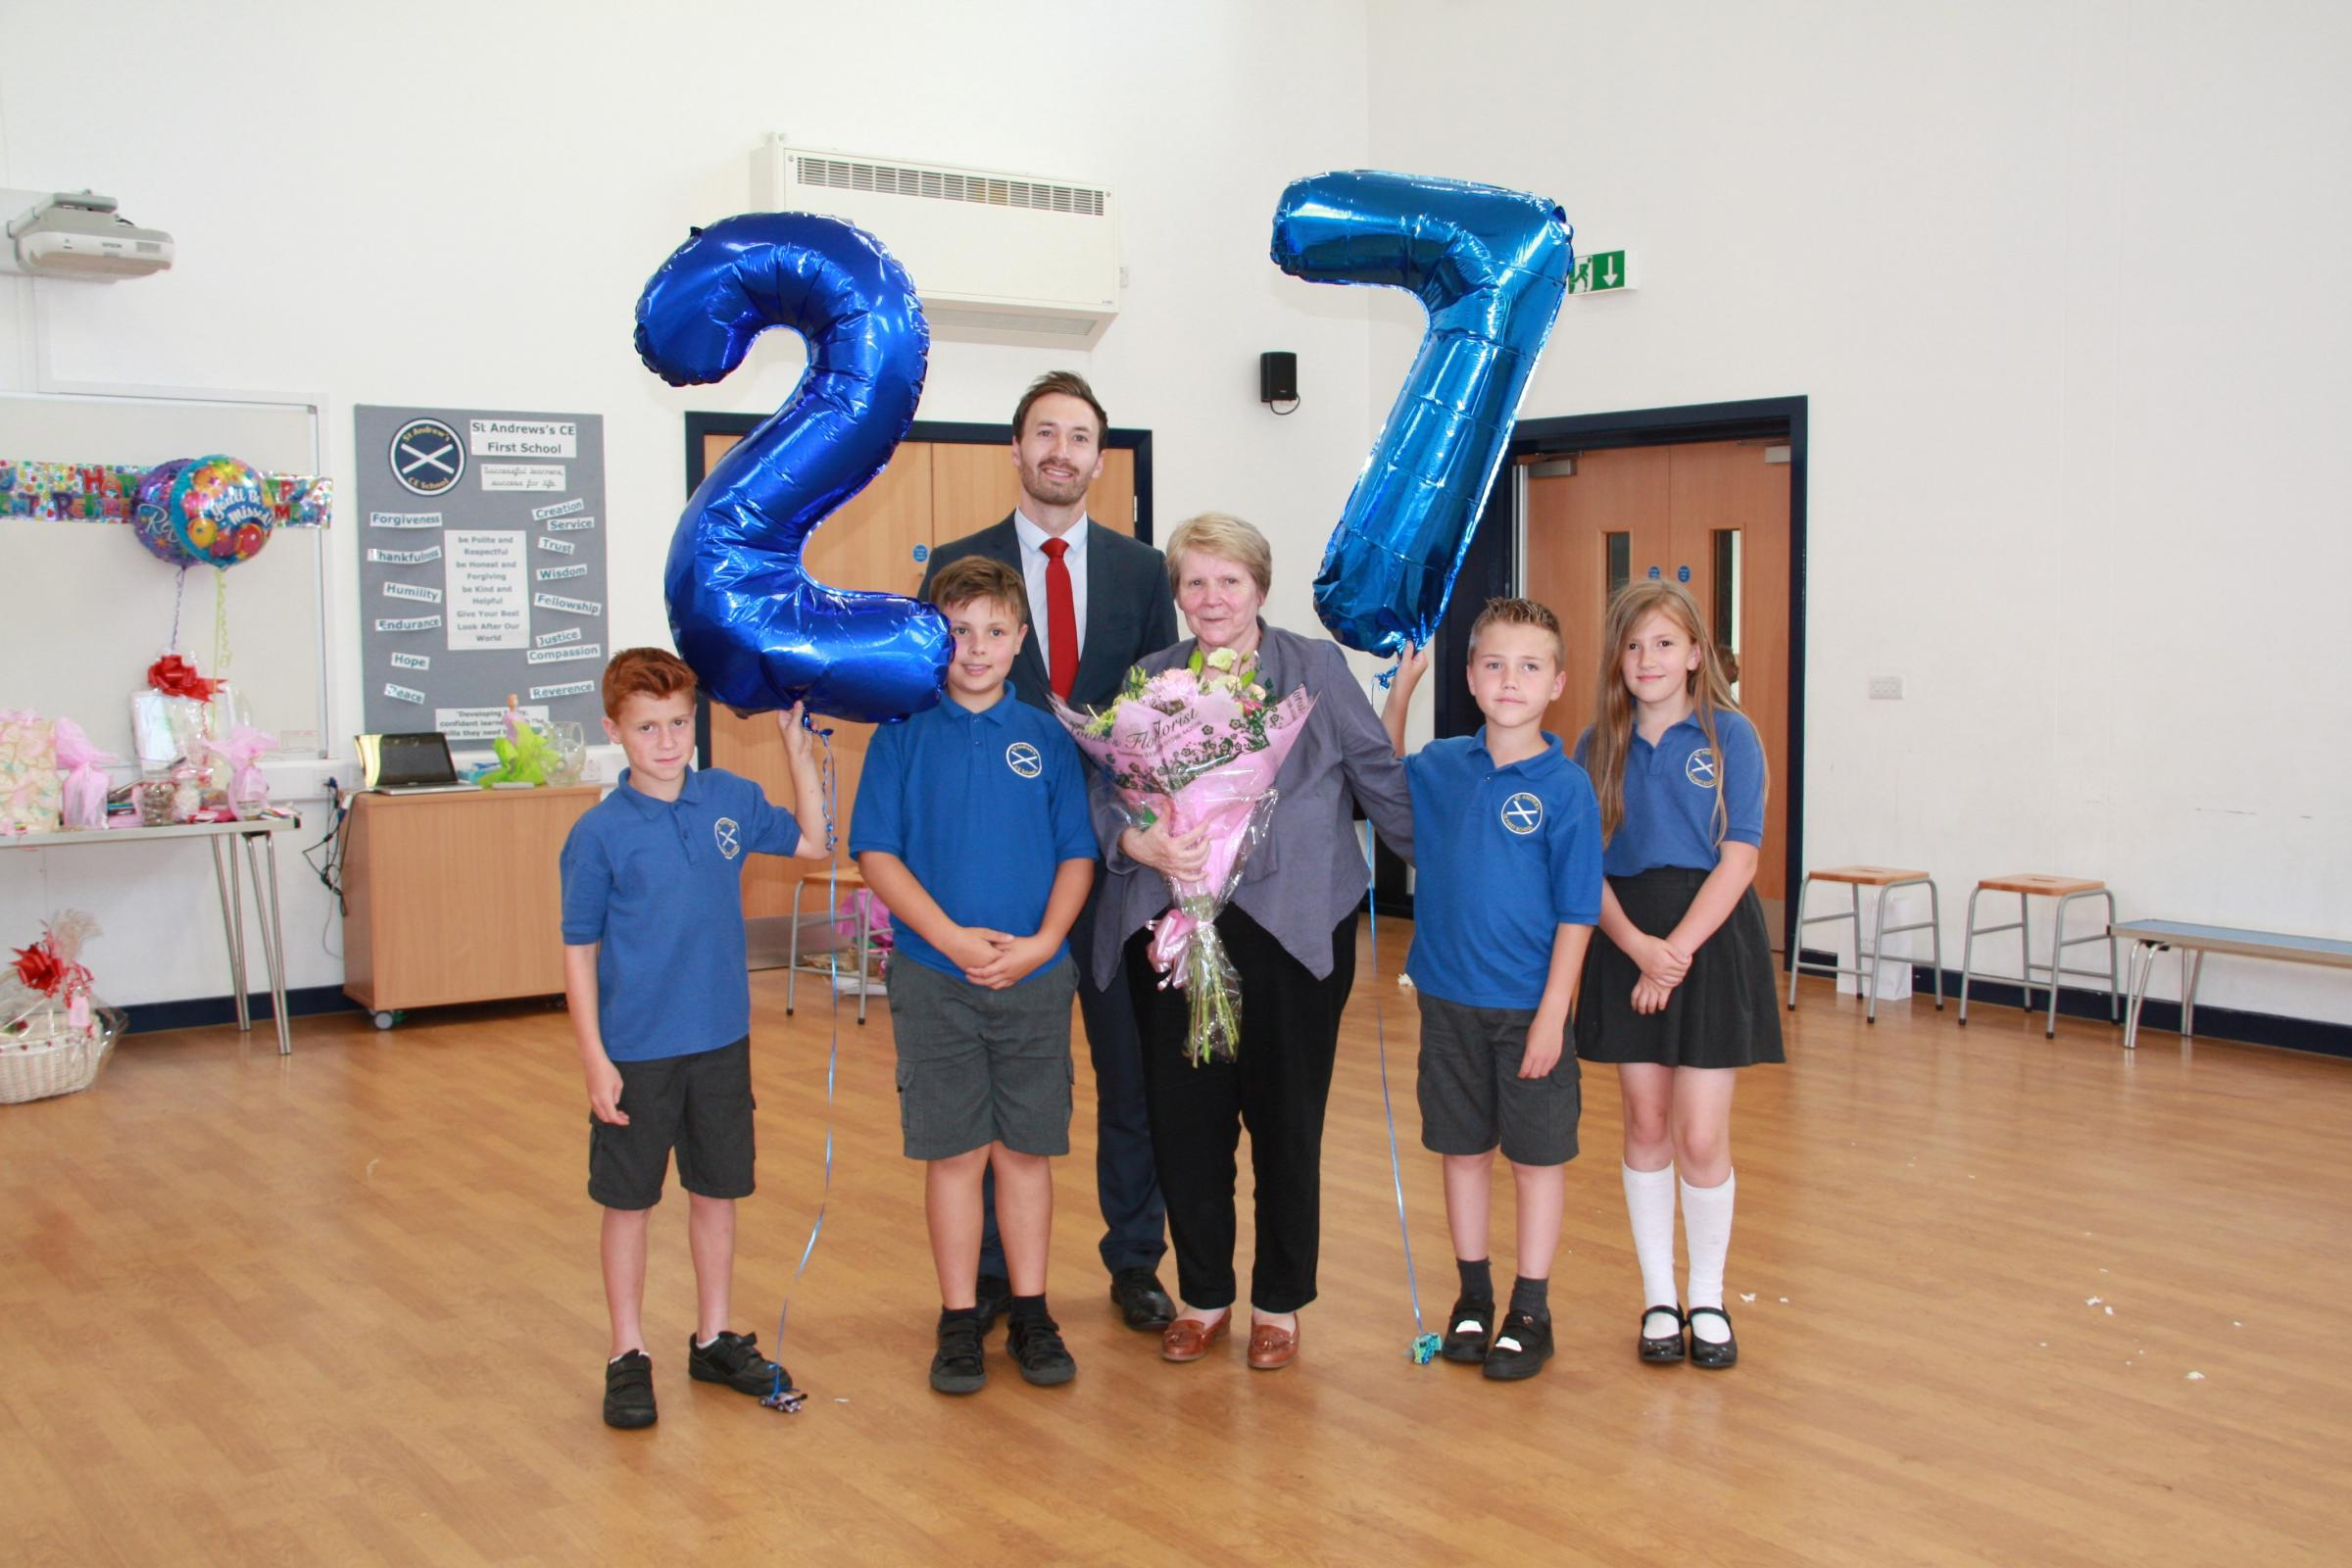 RETIRING: Mary Daffurn, who is retiring from her roles at St Andrew's CE School. Pictures with headteacher Adam Spencer, and pupils Harry Tustin, Jake Kinnersley, Kyle Sadler and Daisy-Mae Murray.